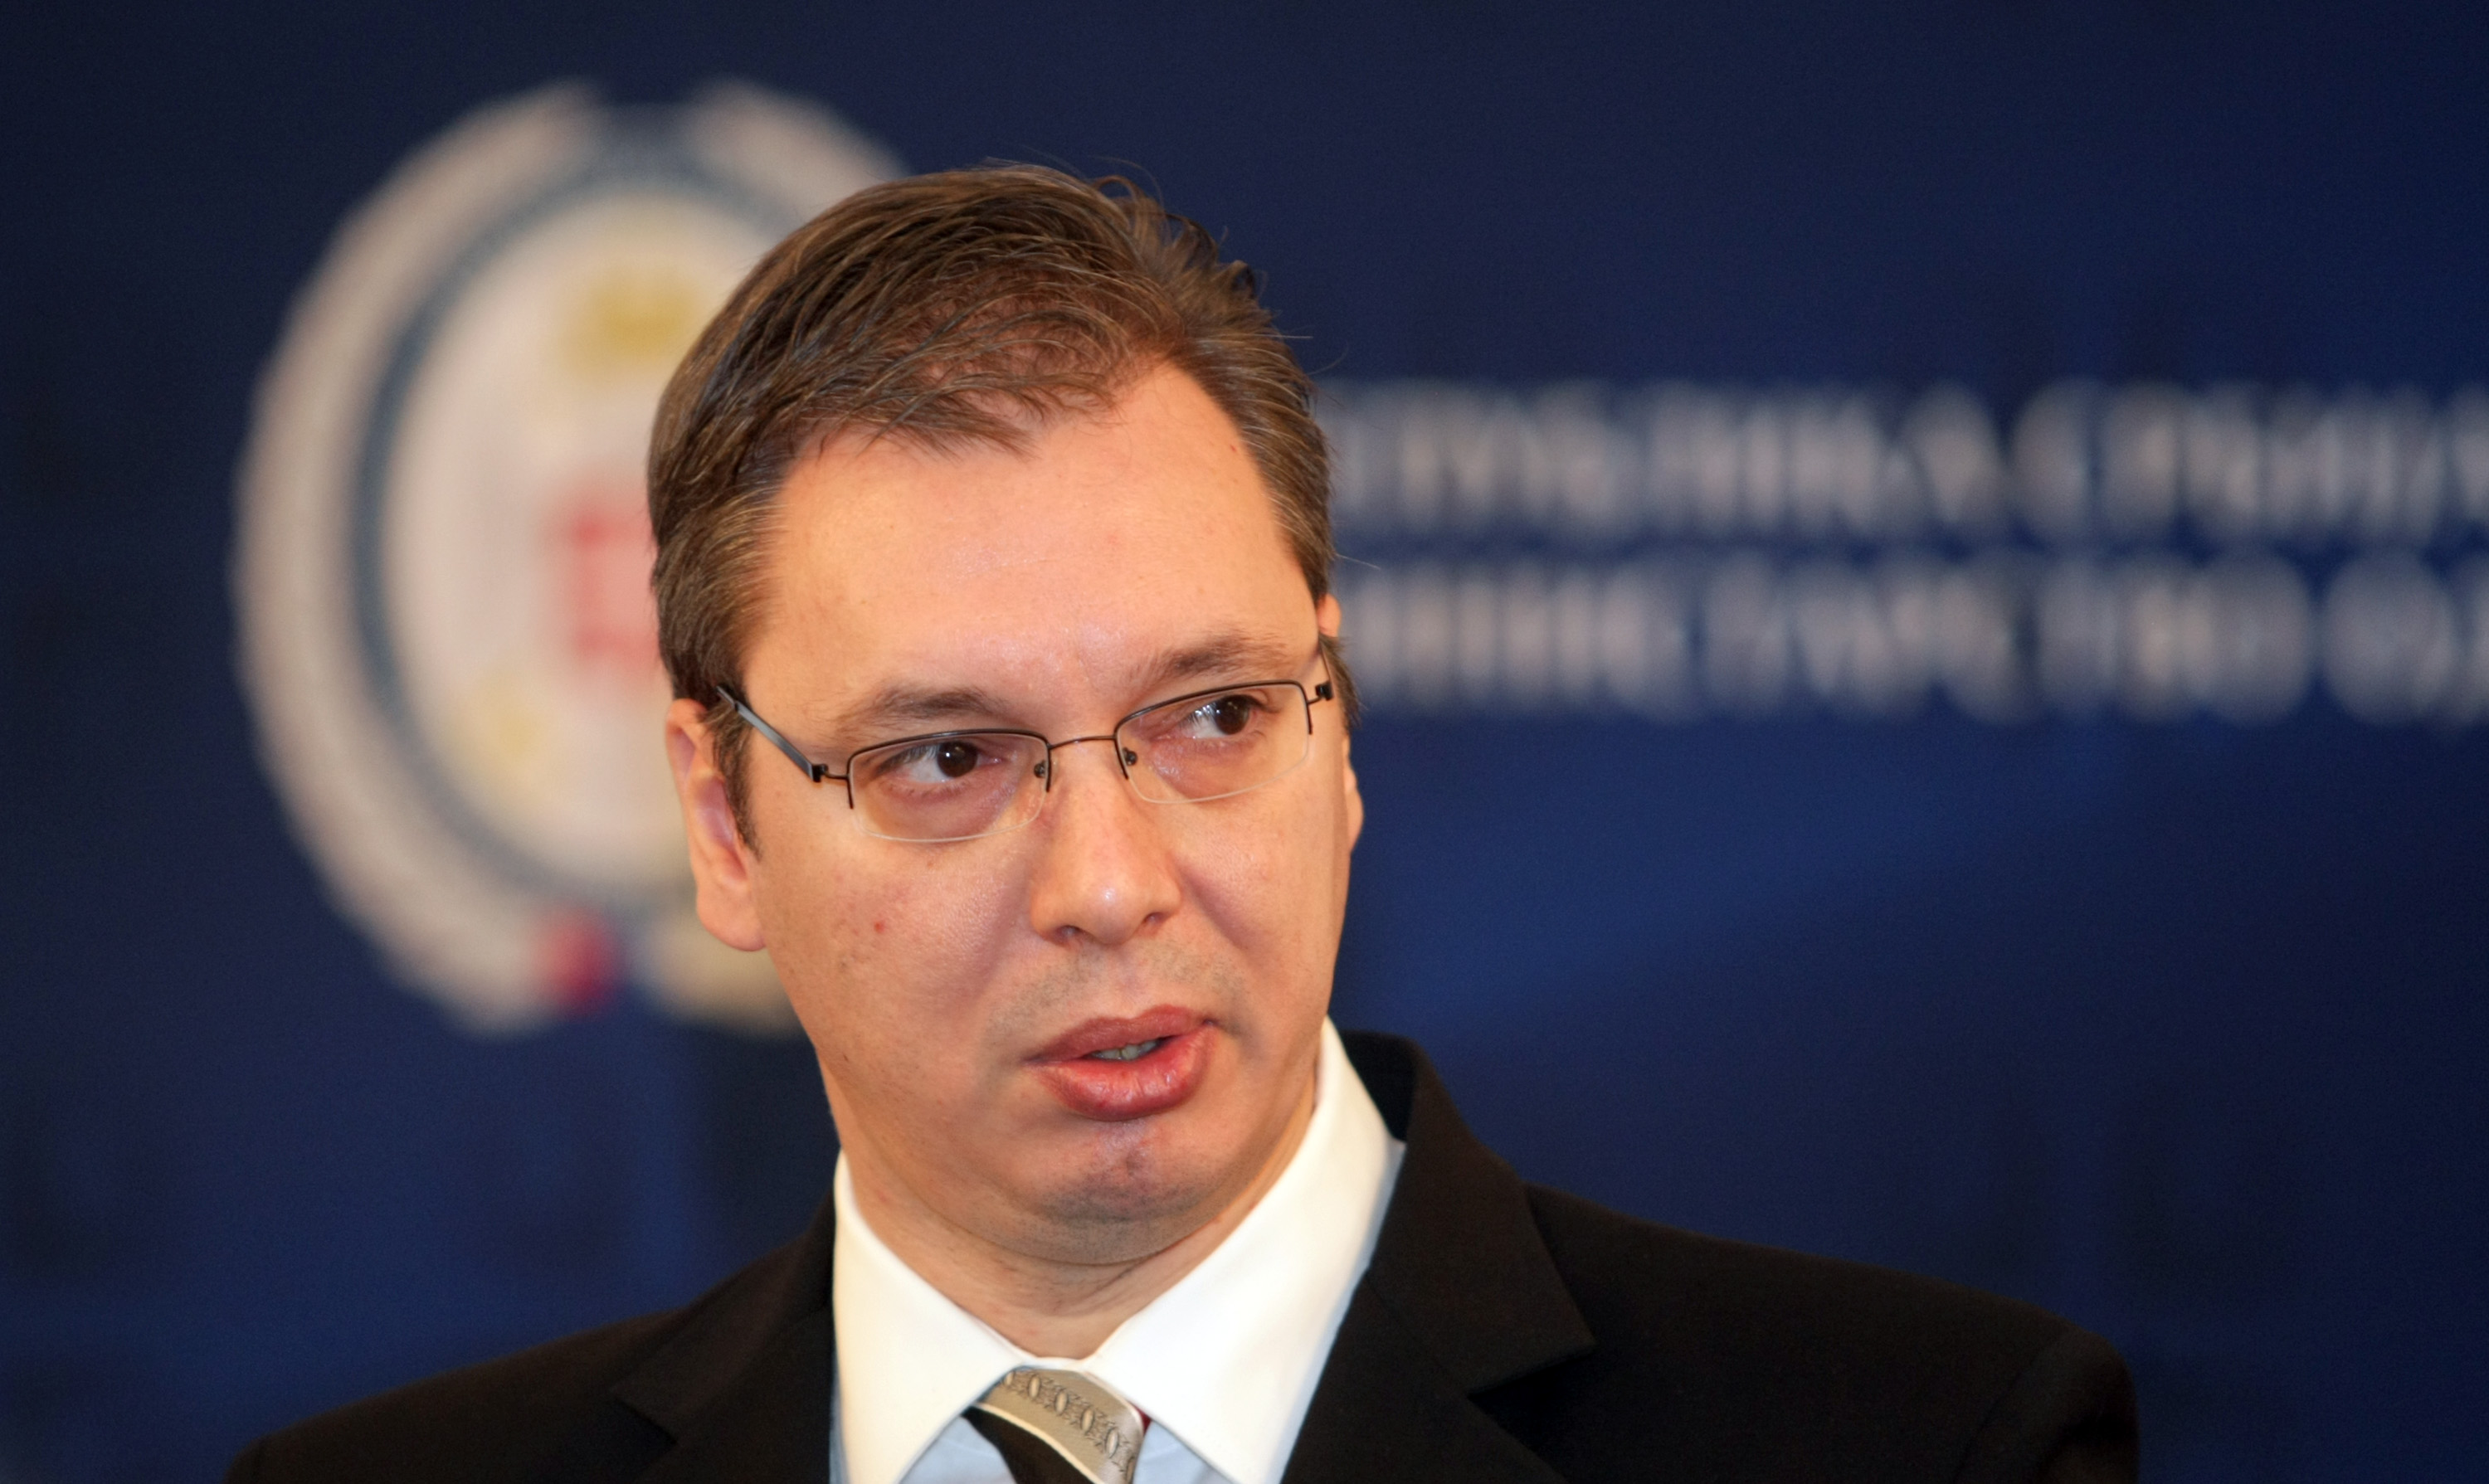 Vucic denies Putin's interference in forming new Serbian government